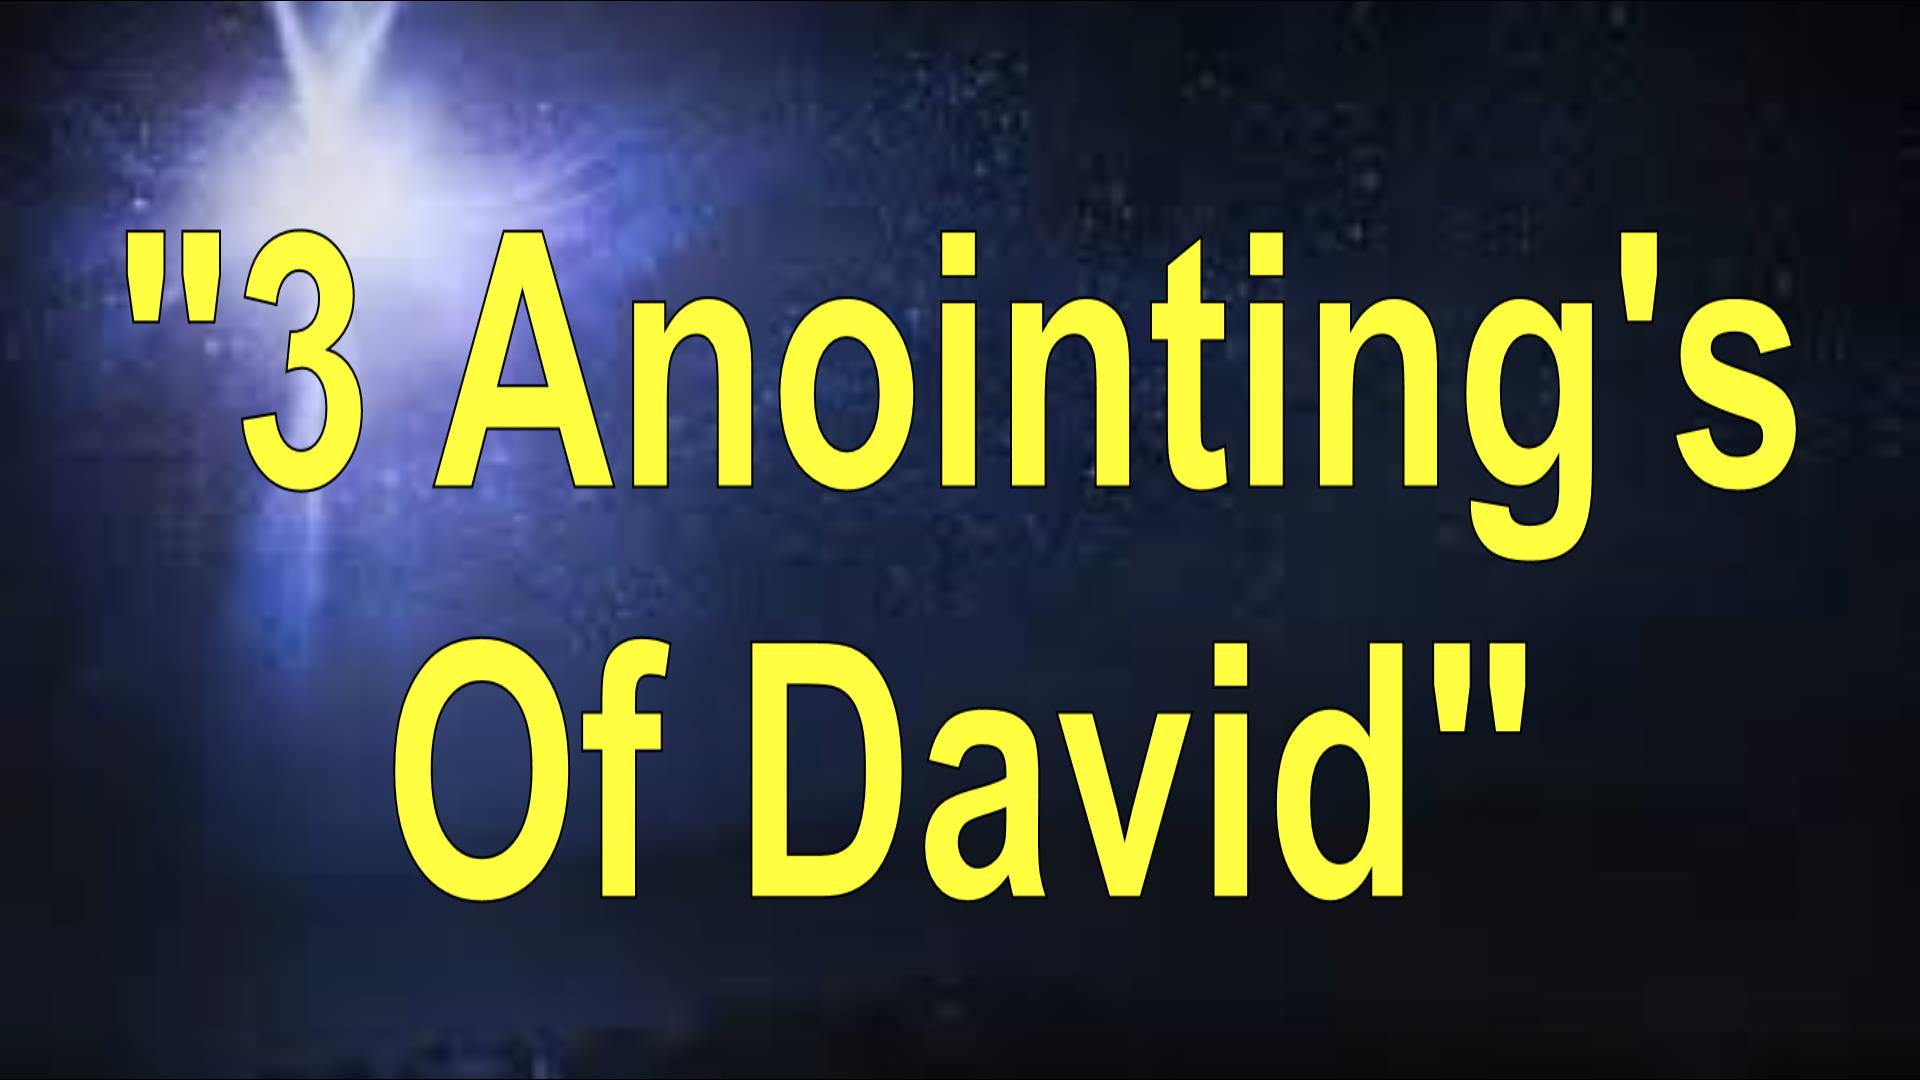 3 ANOINTING'S OF DAVID